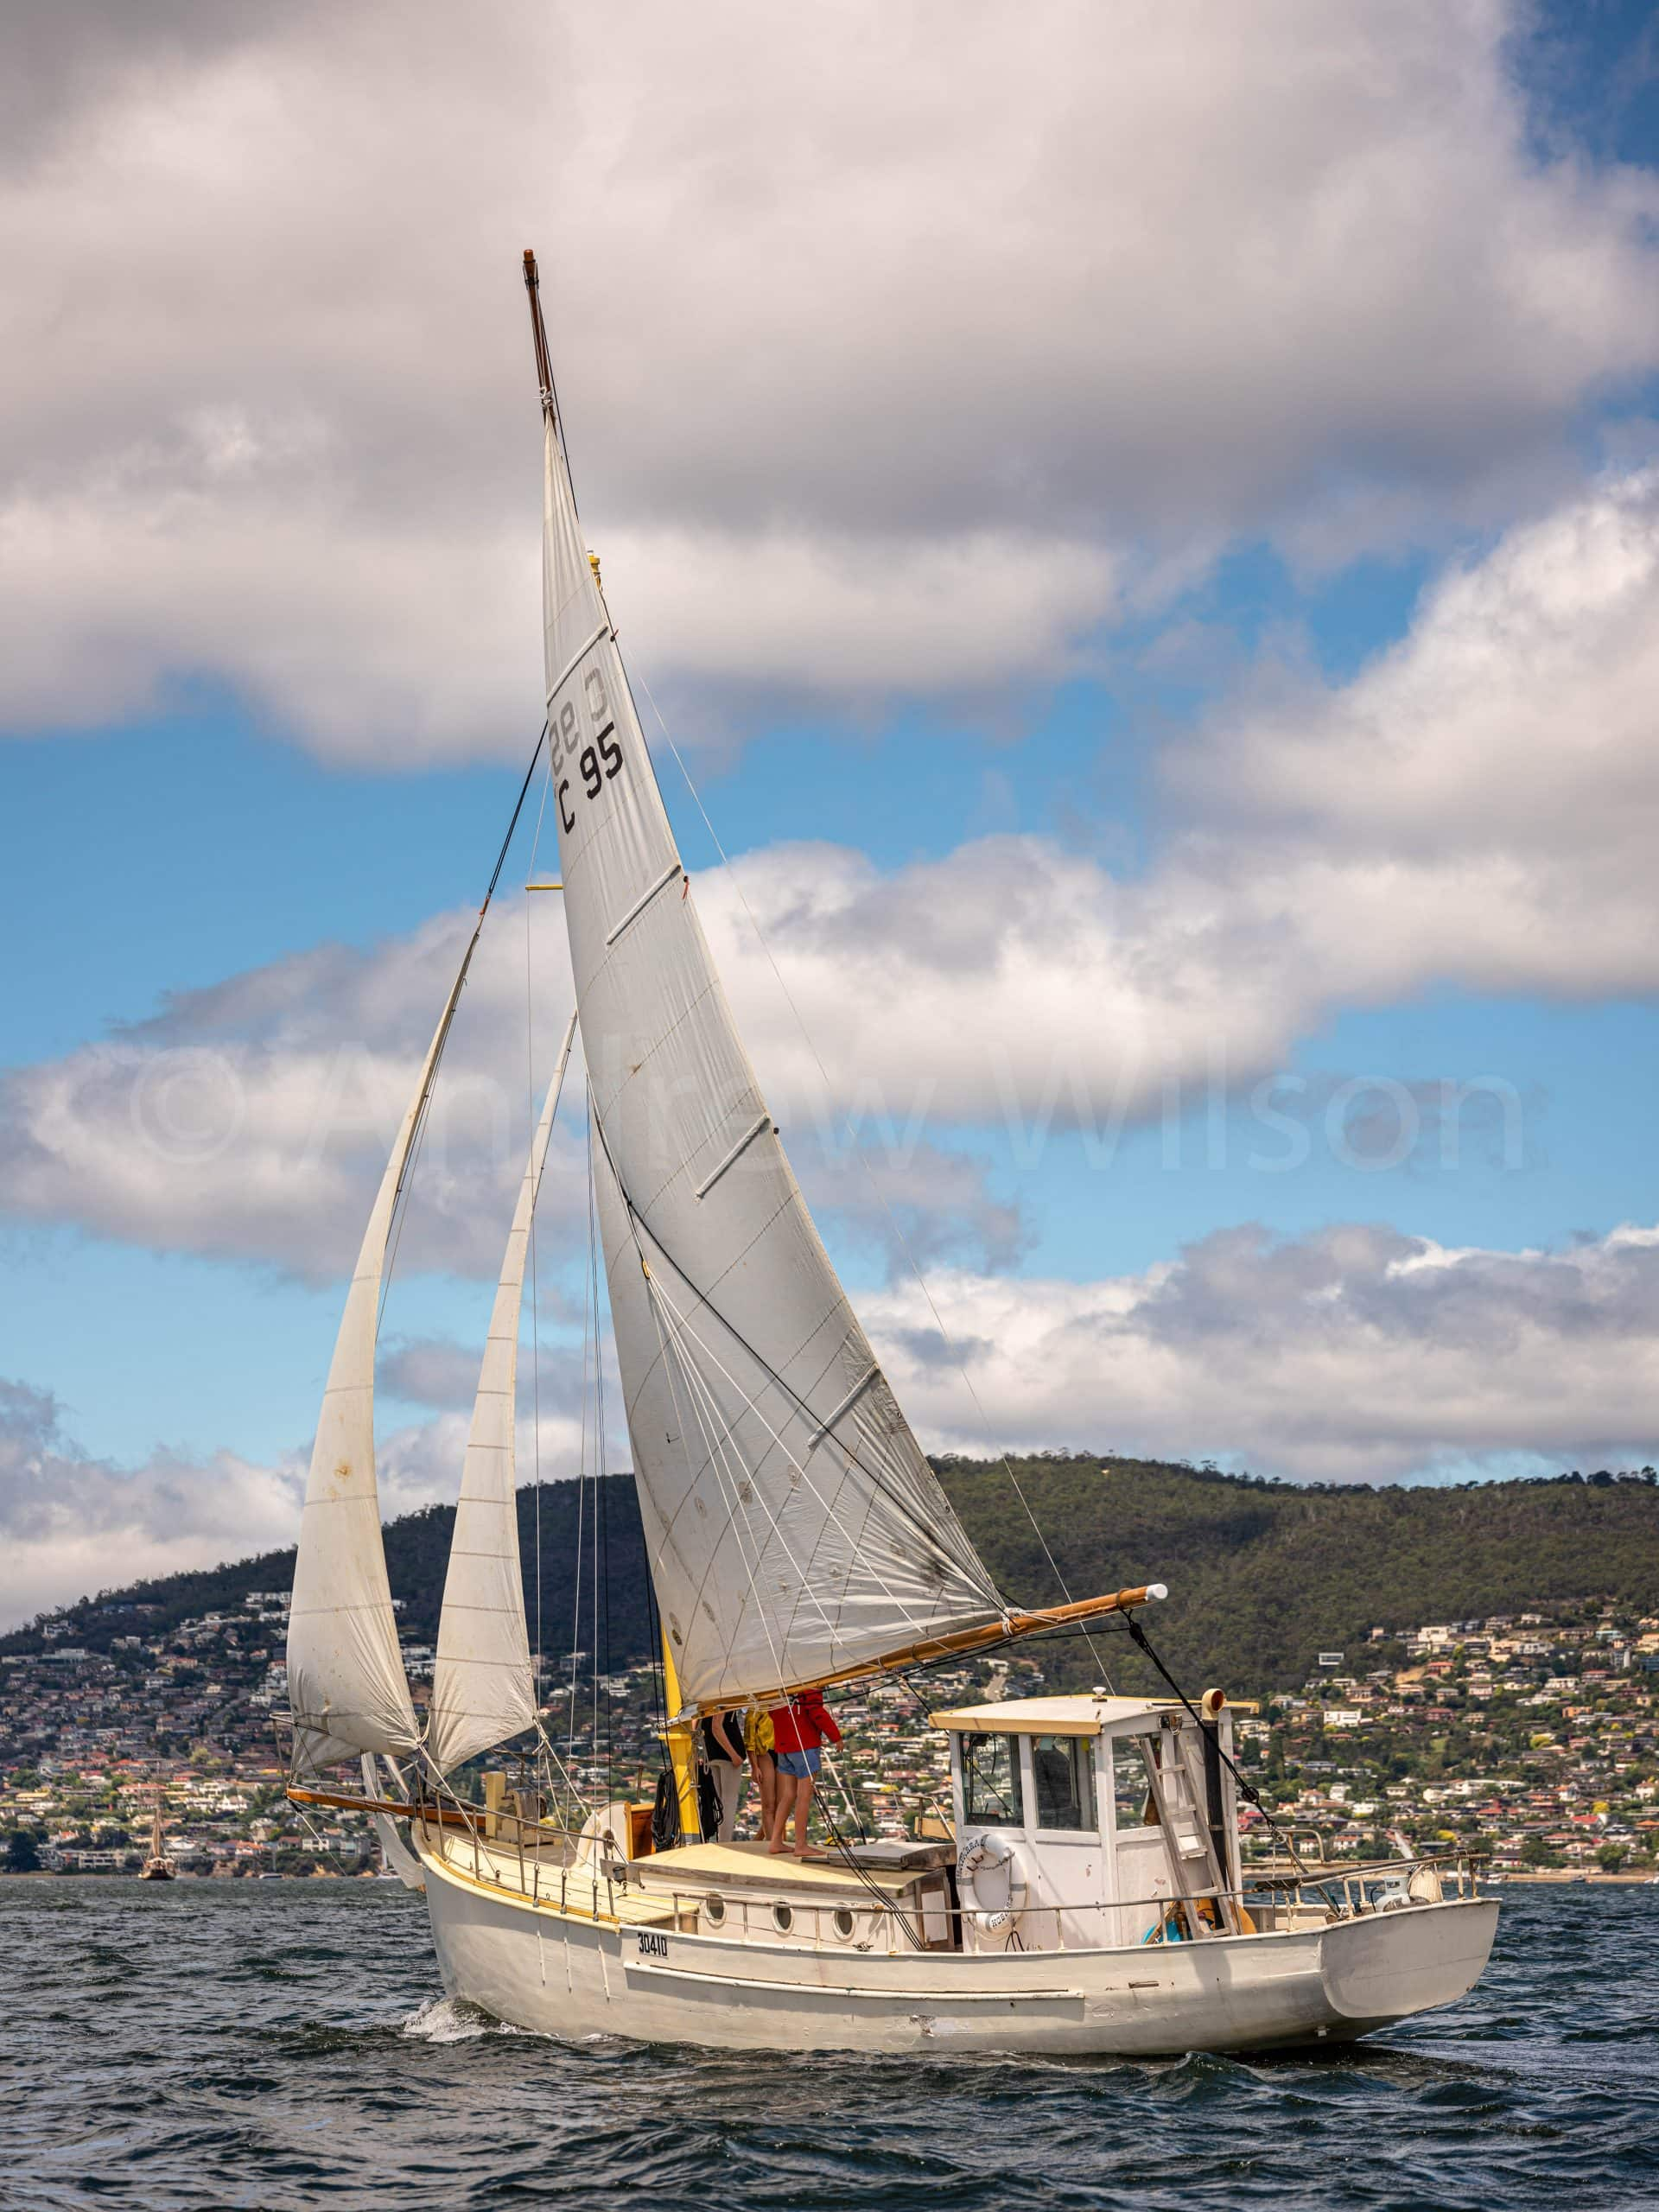 Australian Wooden Boat Festival, Chaparral, Parade of Sail